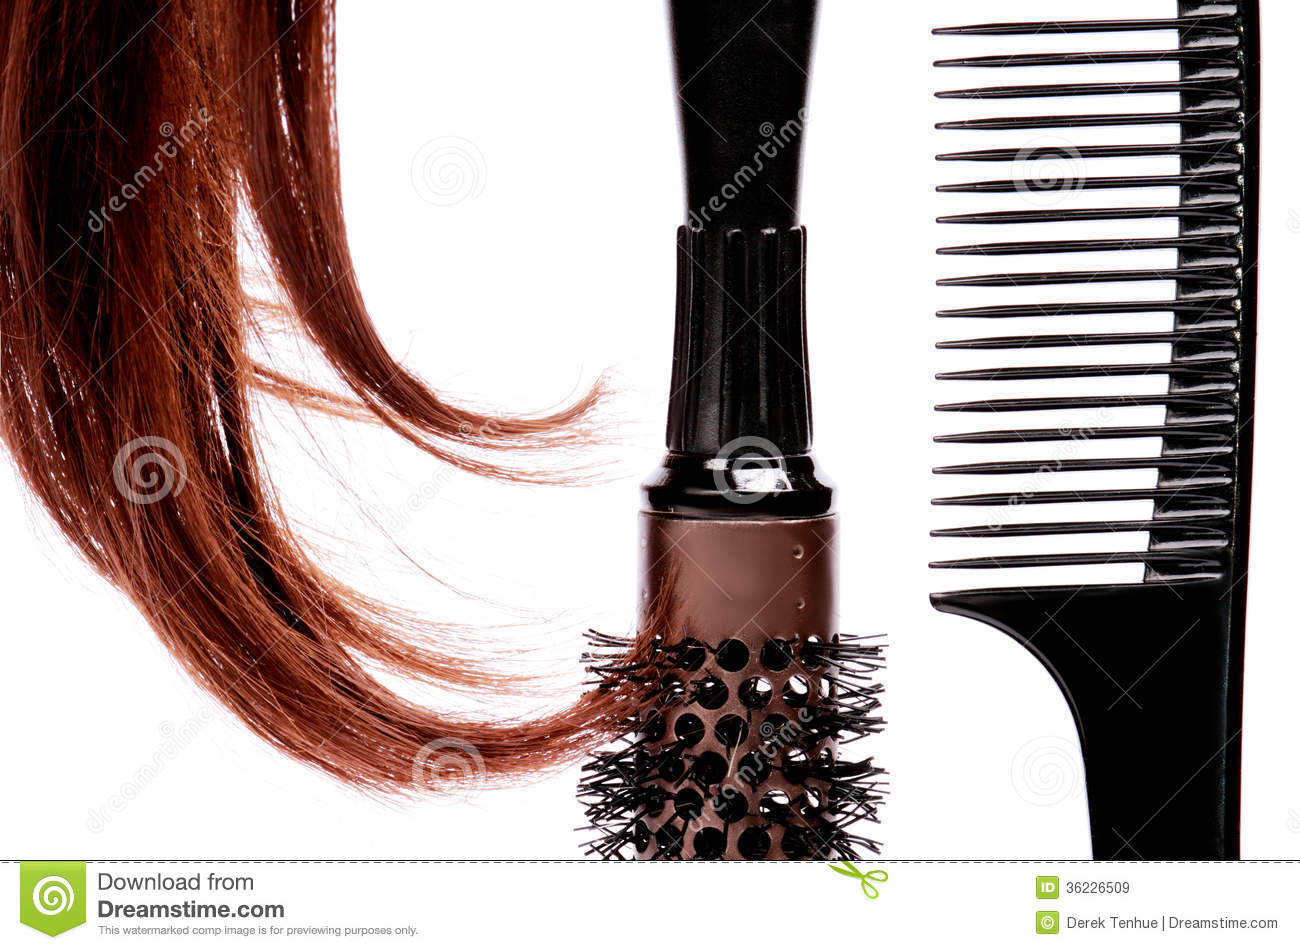 Hair Salon Royalty Free Stock Images - Image: 36226509